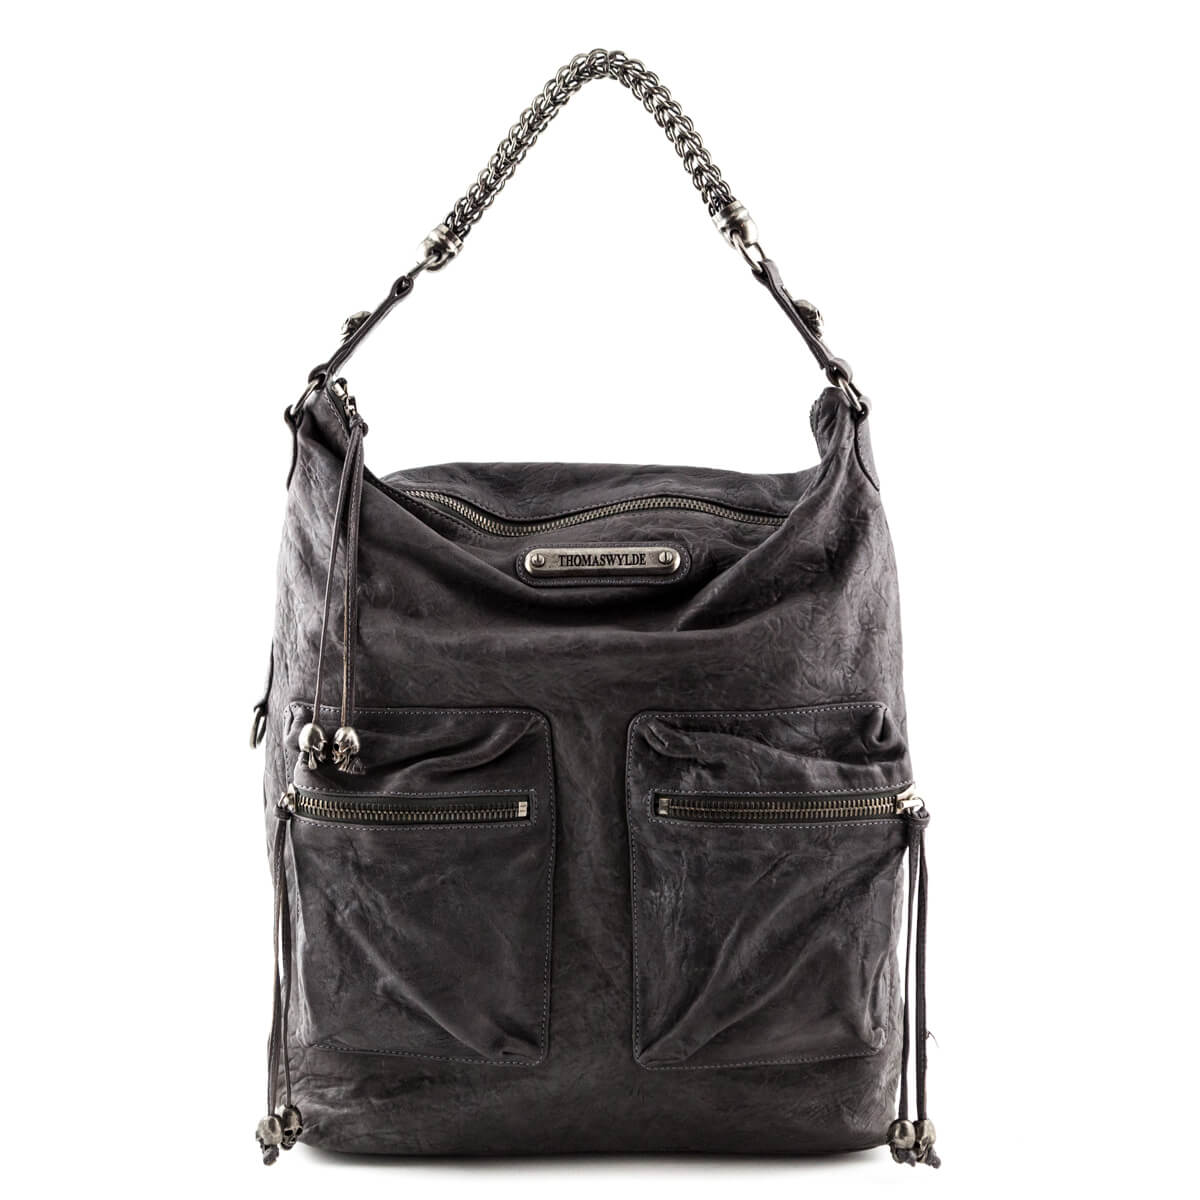 064834bb59a7 Thomas Wylde Dark Gray Wrinkled Leather Skull-Embellished Tote - LOVE that  BAG - Preowned ...